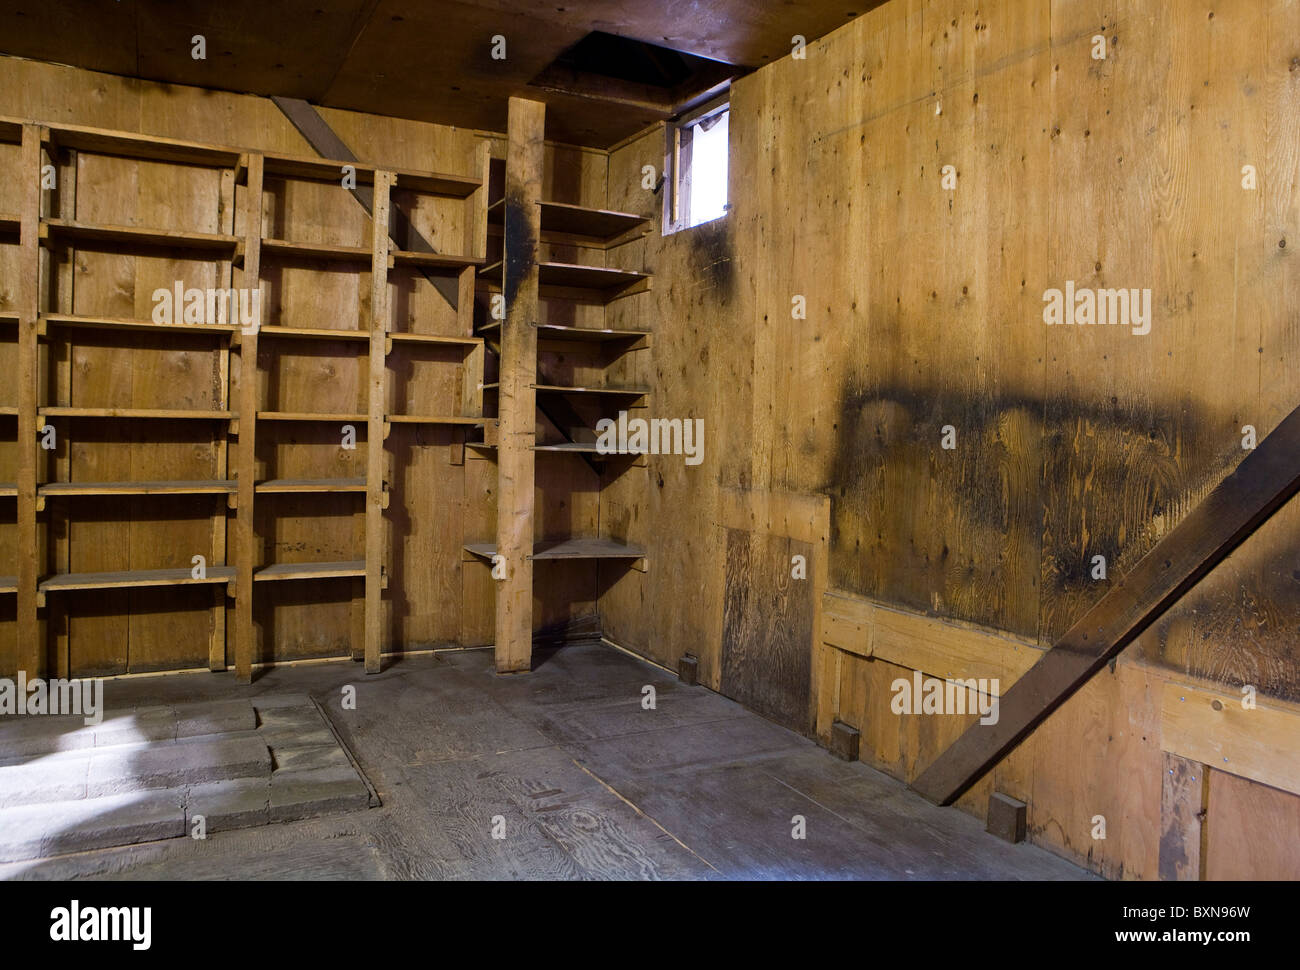 The cabin of Ted Kaczynski, the 'Unabomber' - Stock Image